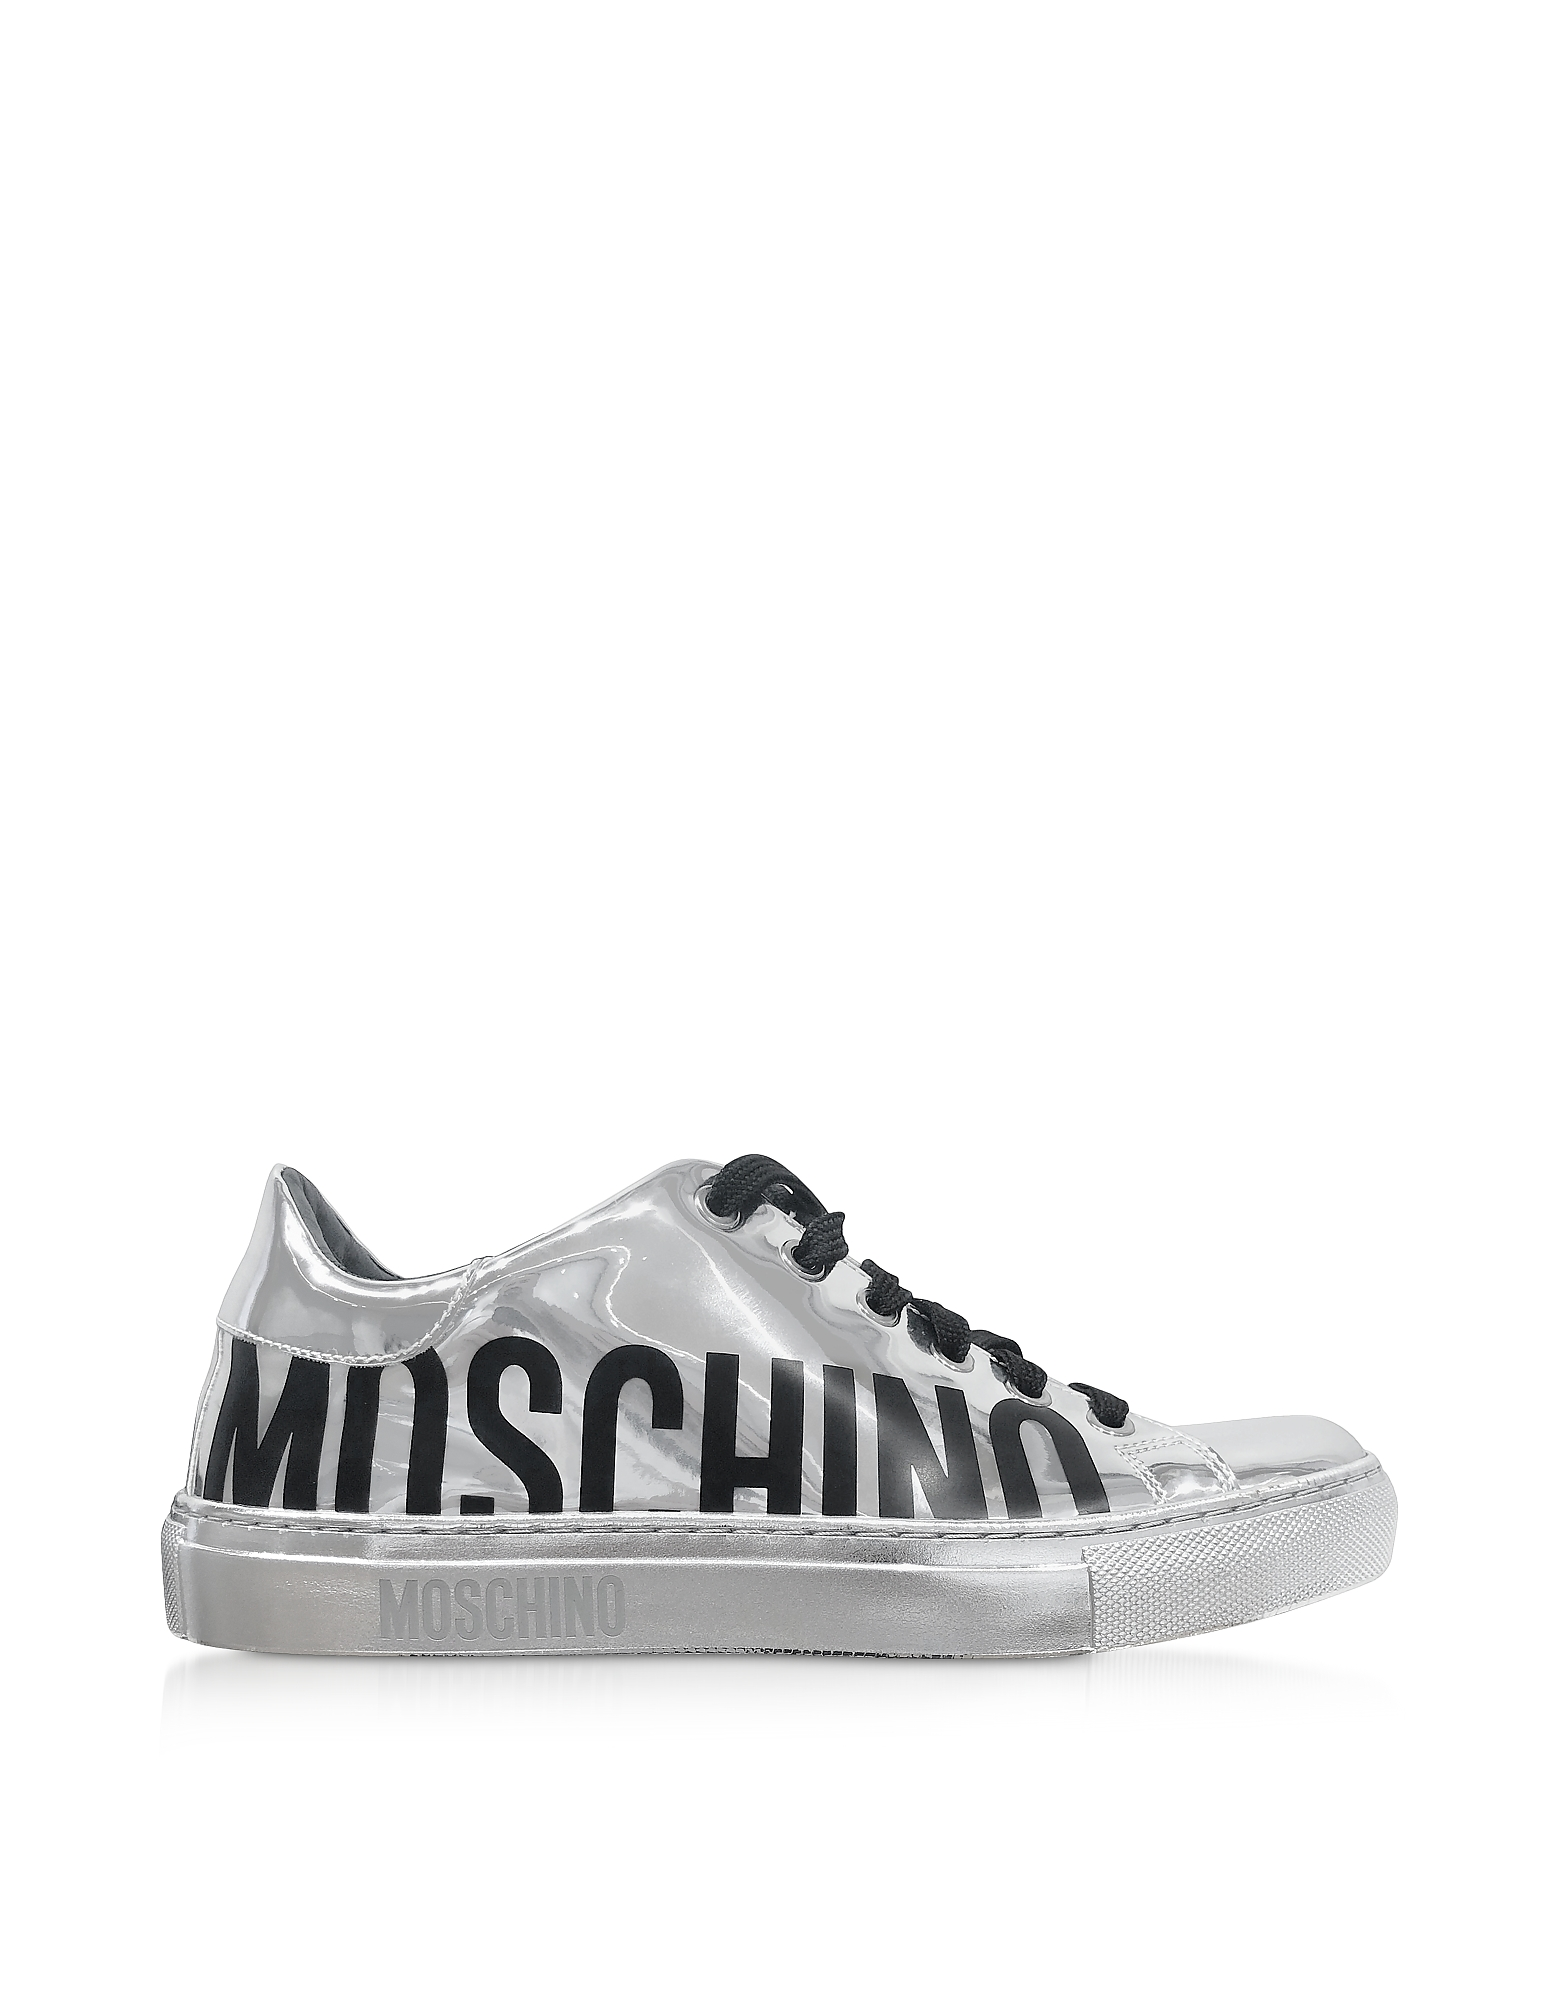 Signature Silver Laminated Leather Women's Sneakers